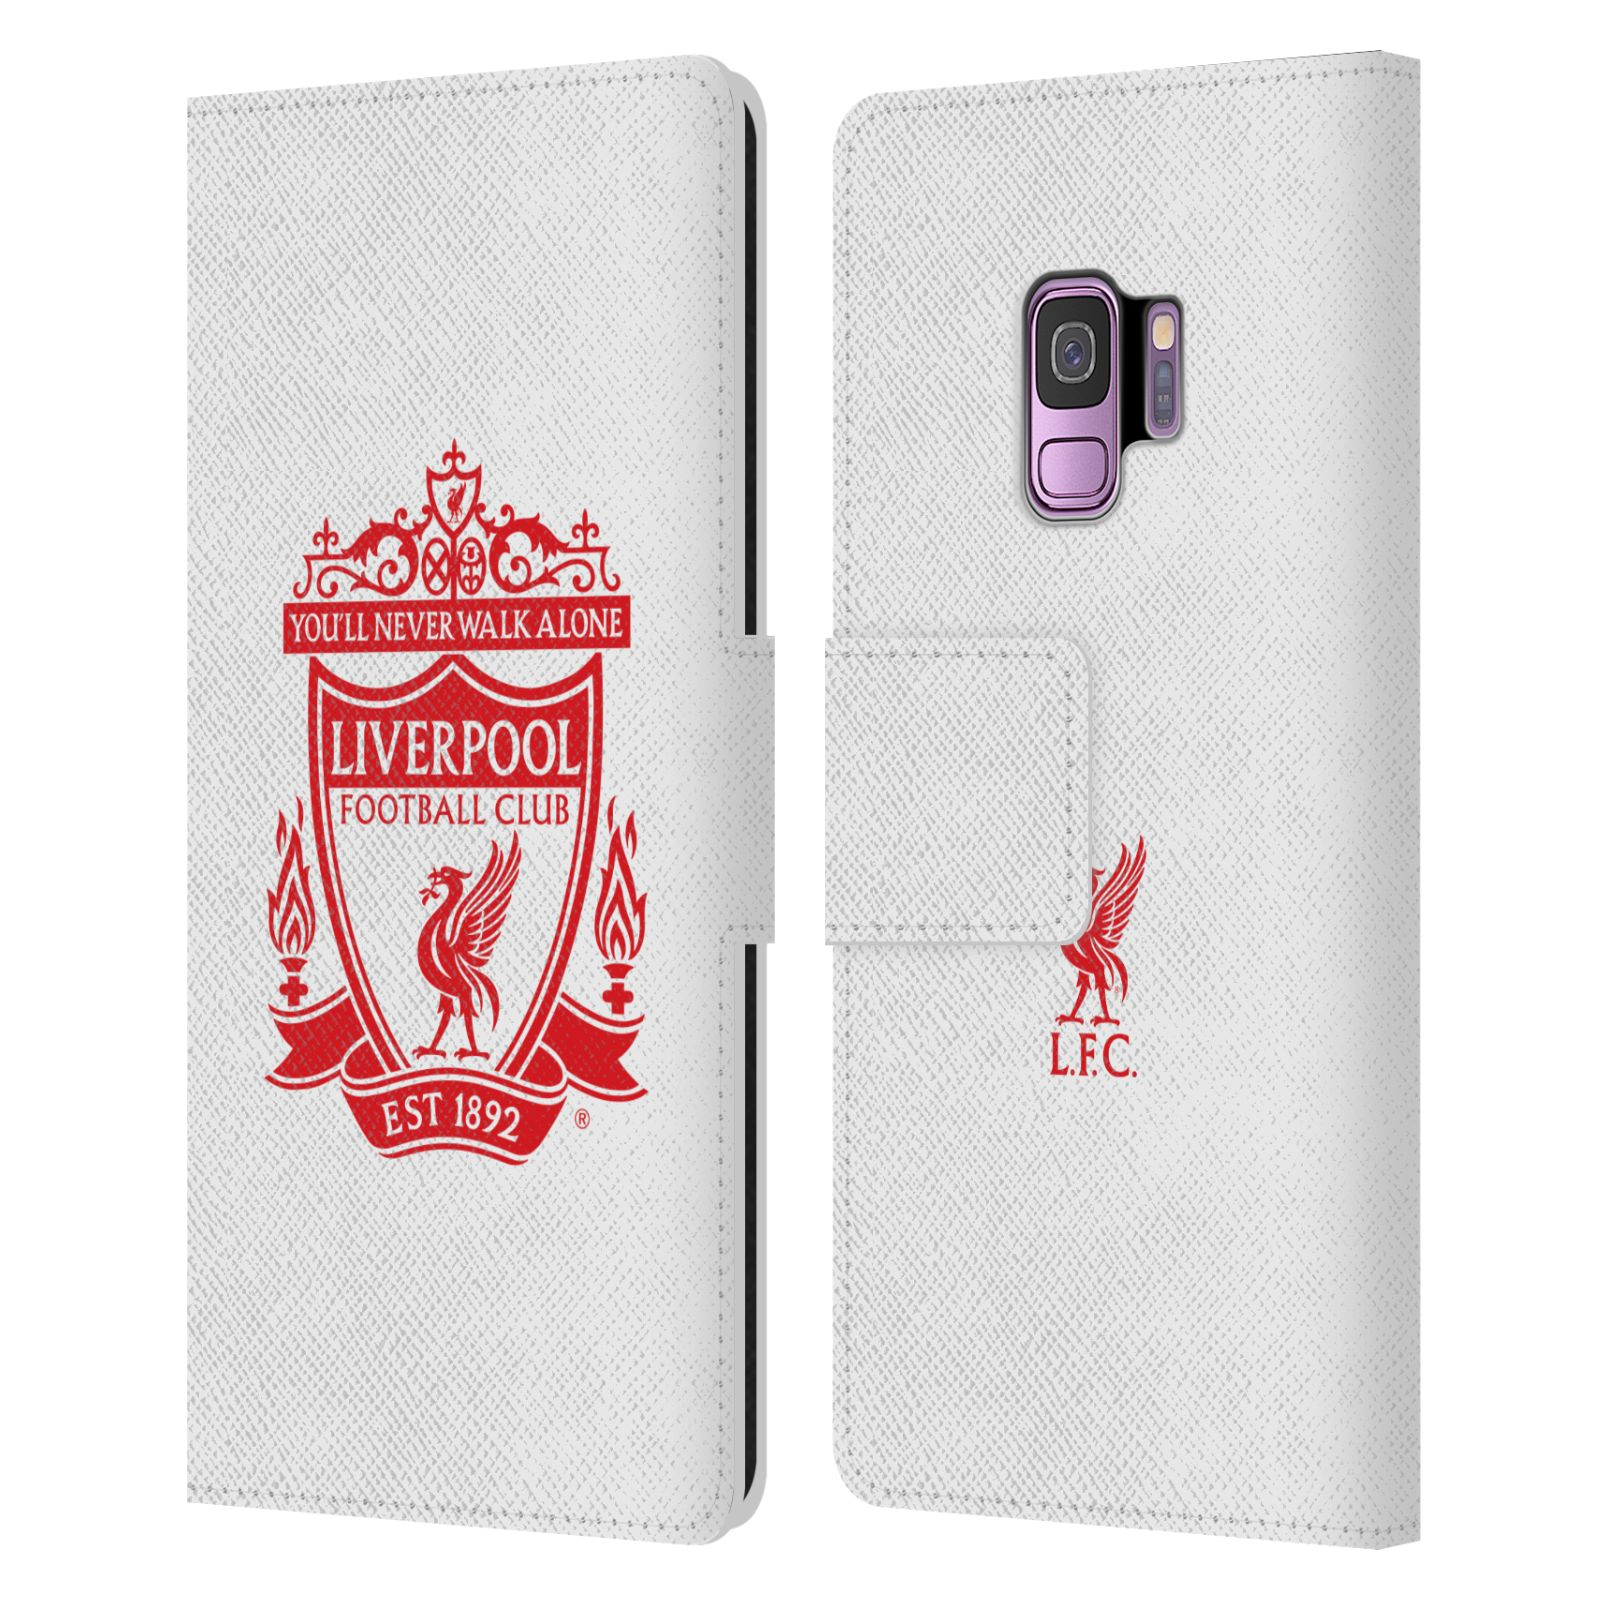 LIVERPOOL-FC-LFC-CREST-1-PU-LEATHER-BOOK-WALLET-CASE-COVER-FOR-SAMSUNG-PHONES-1 thumbnail 15